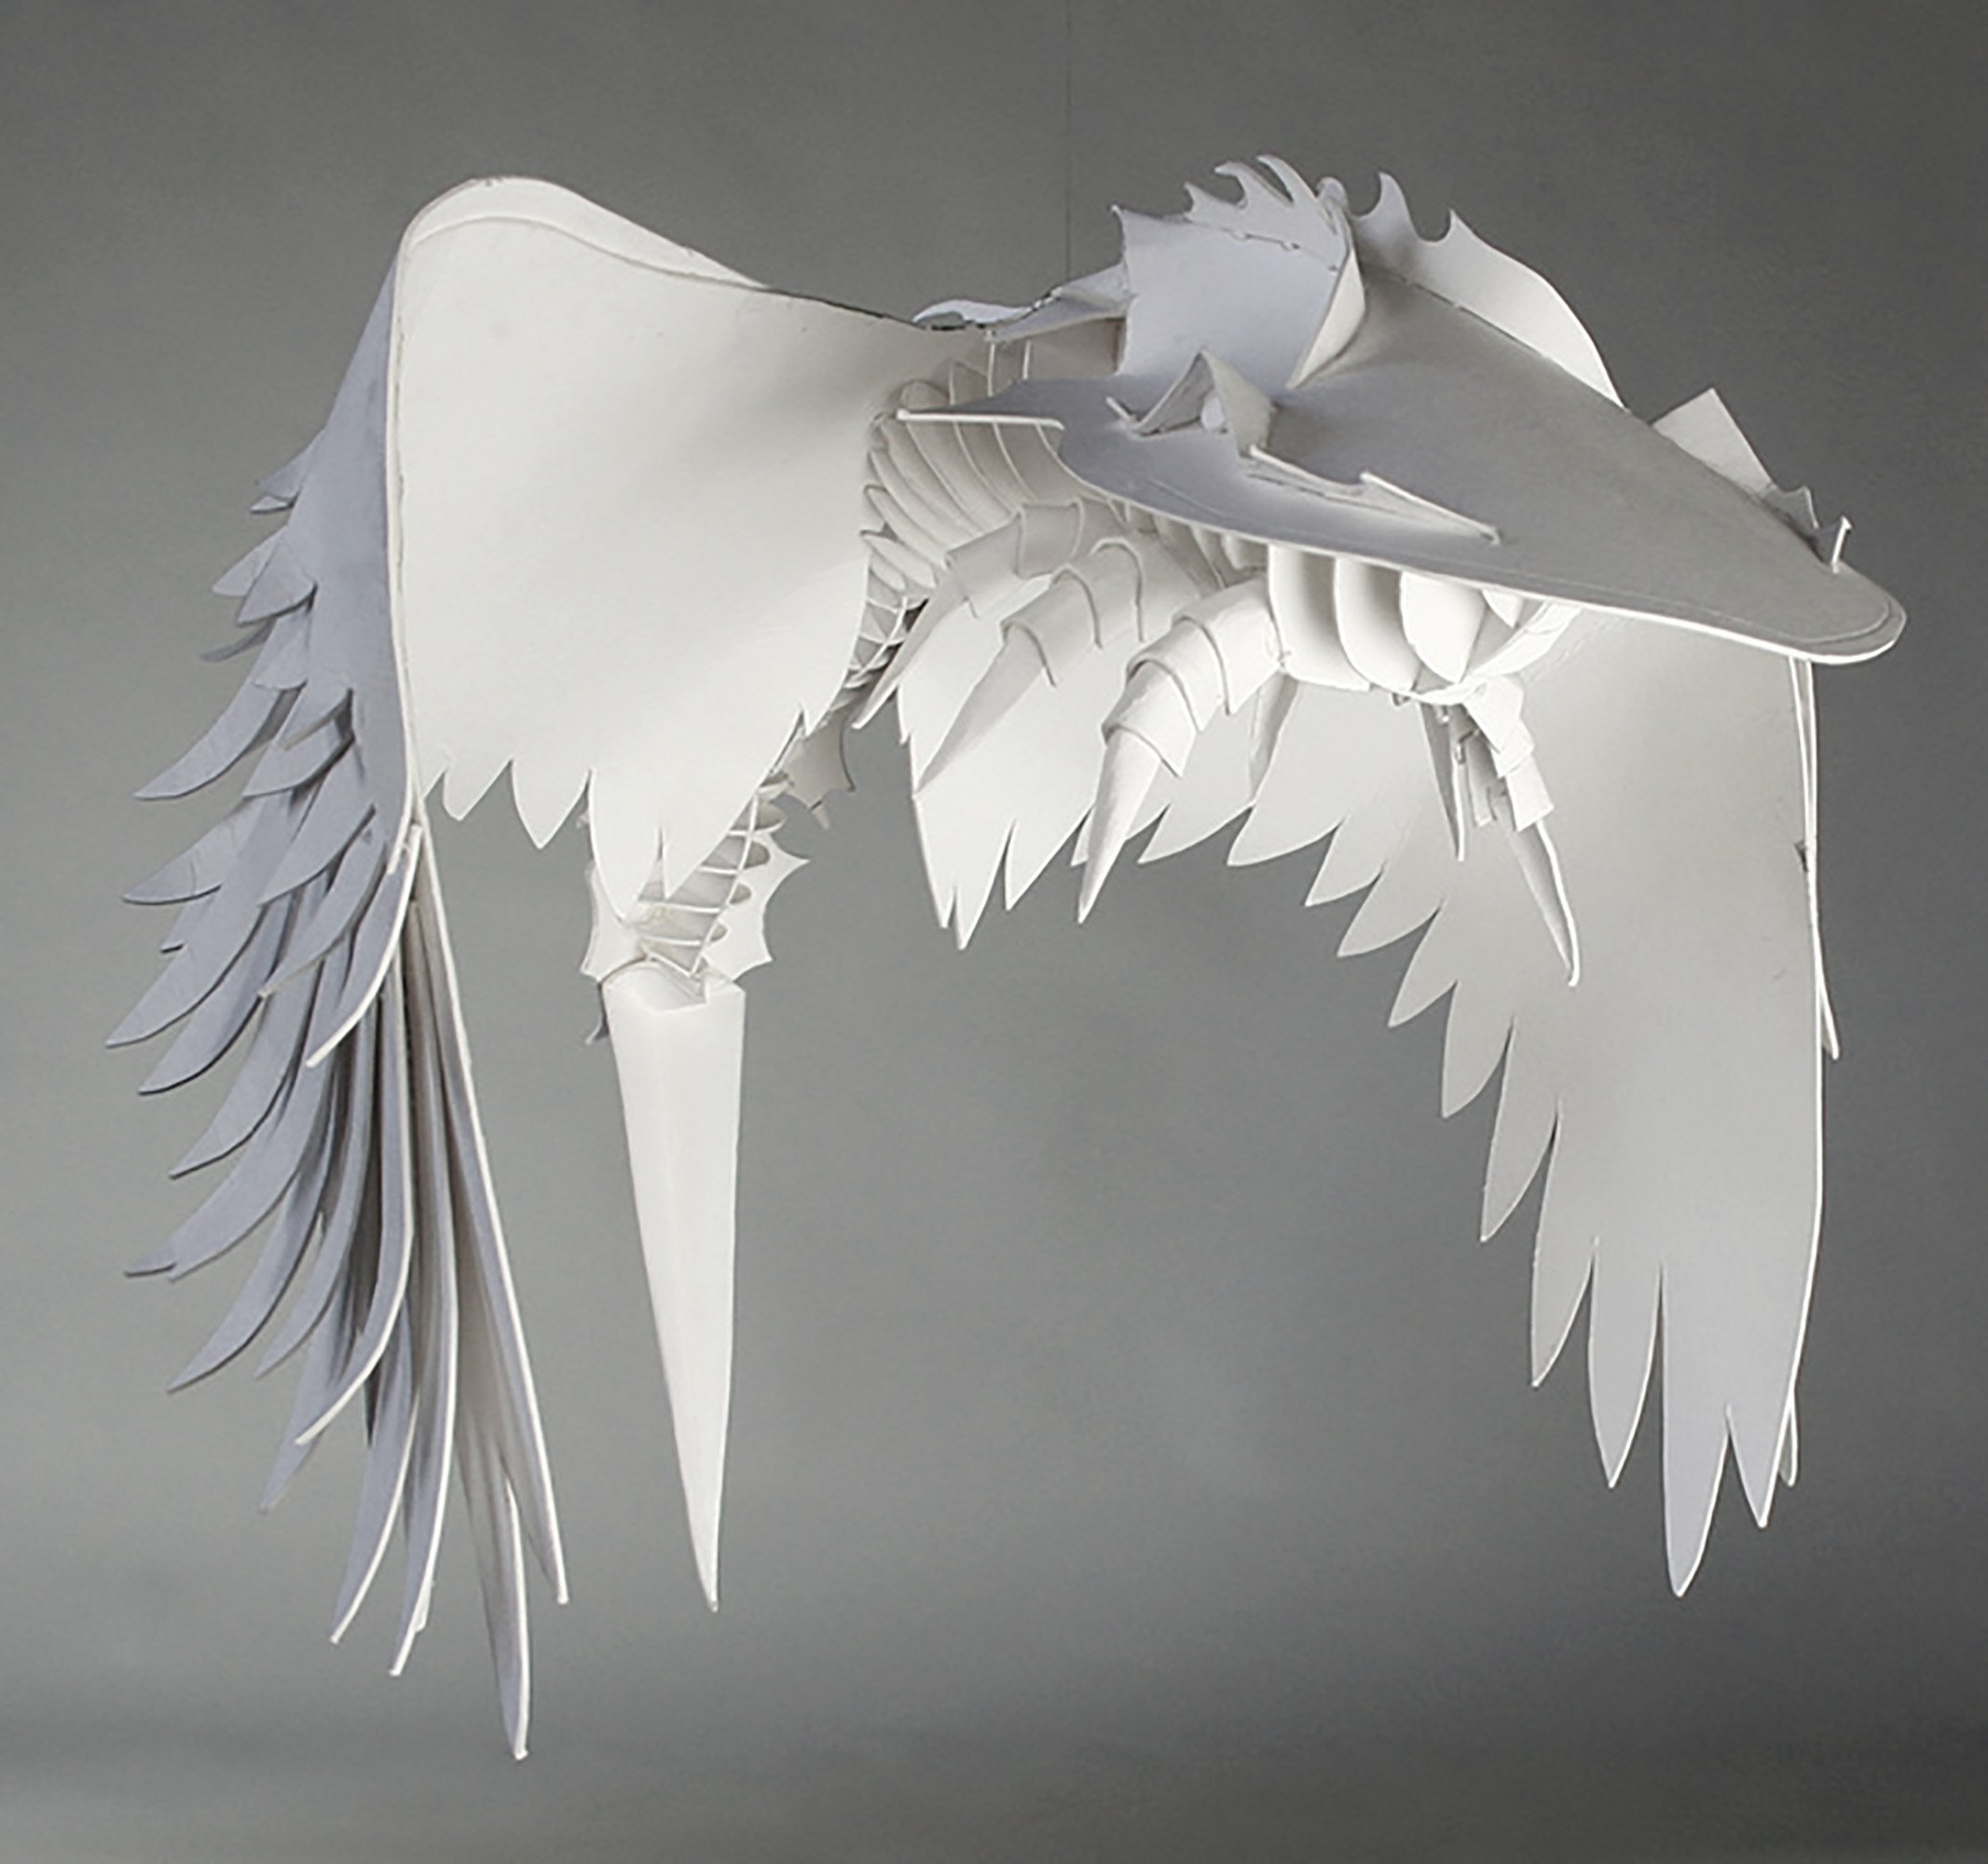 Bird 3D taskboard sculpture